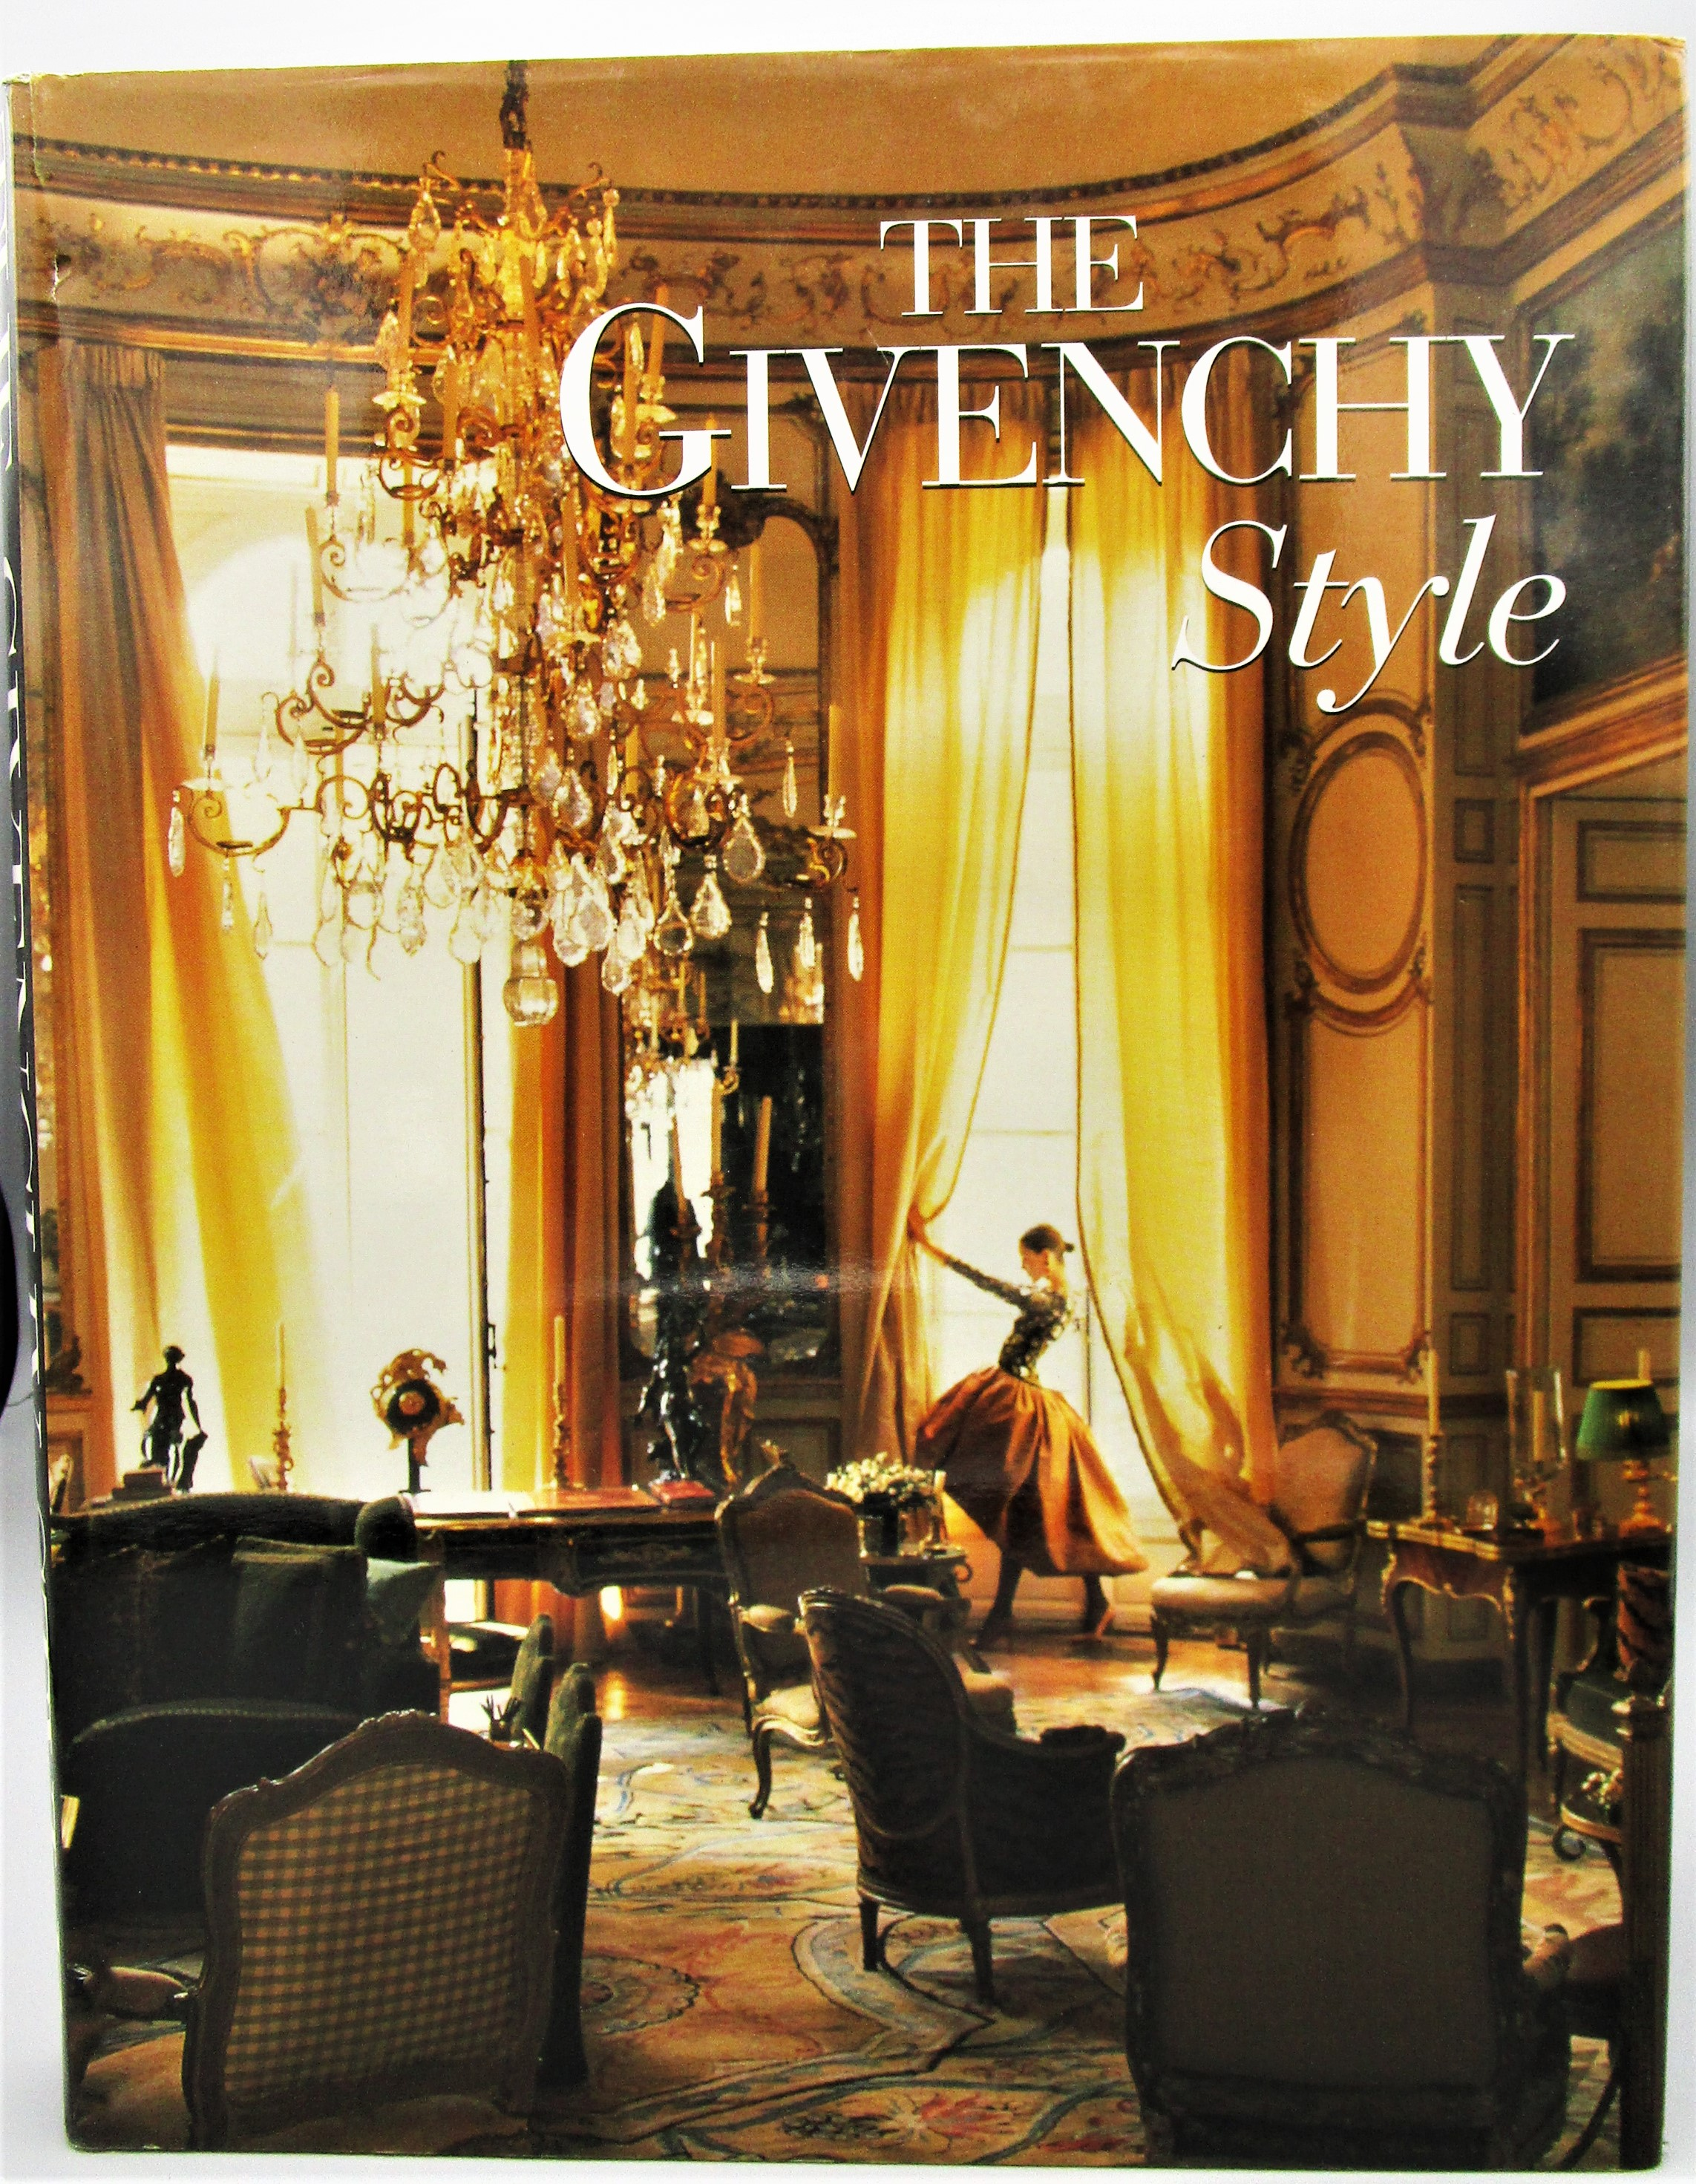 THE GIVENCHY STYLE, by Francoise Mohrt - 1998 SIGNED